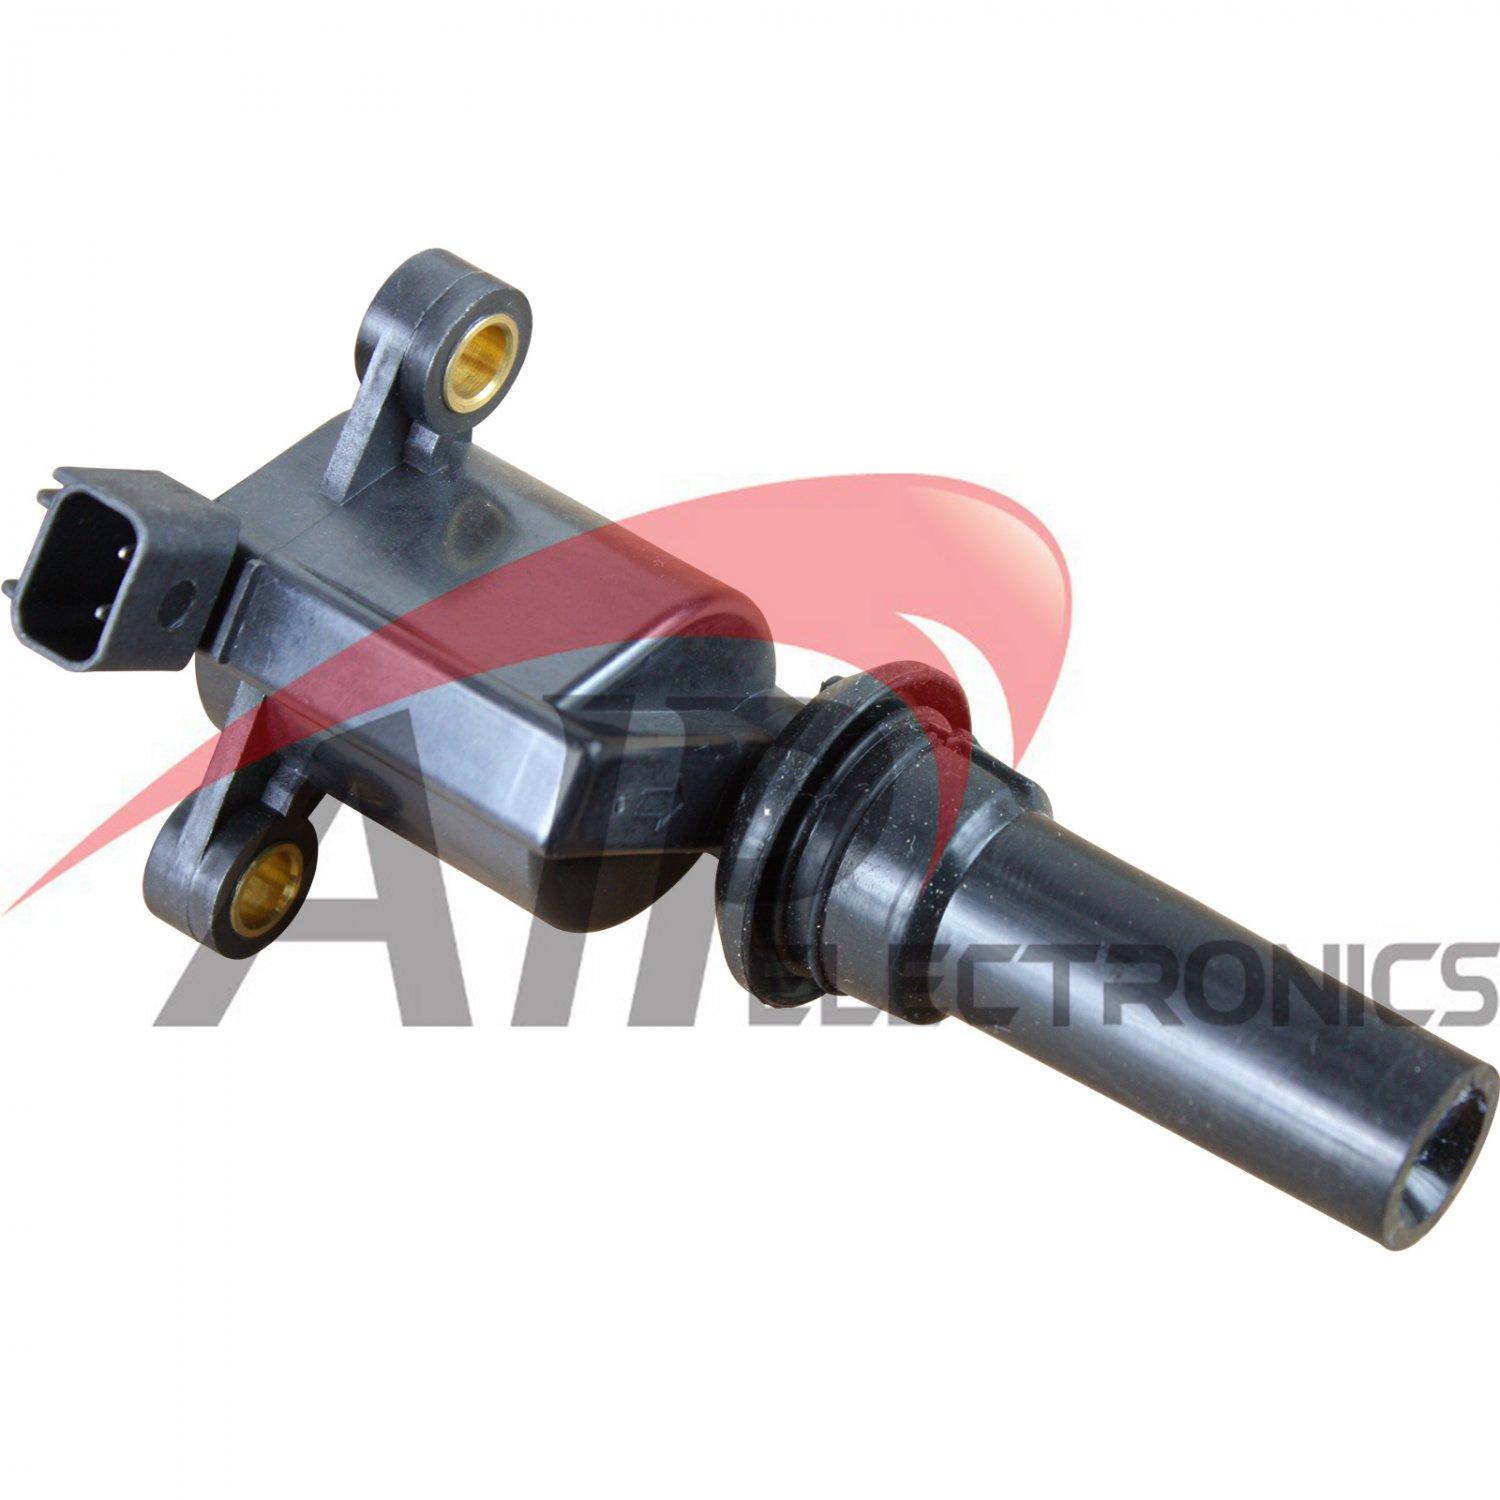 Brand New Ignition Coil Pack / Pencil / Coil on Plug FORD SHO 3.4L V8 Complete Oem Fit C465